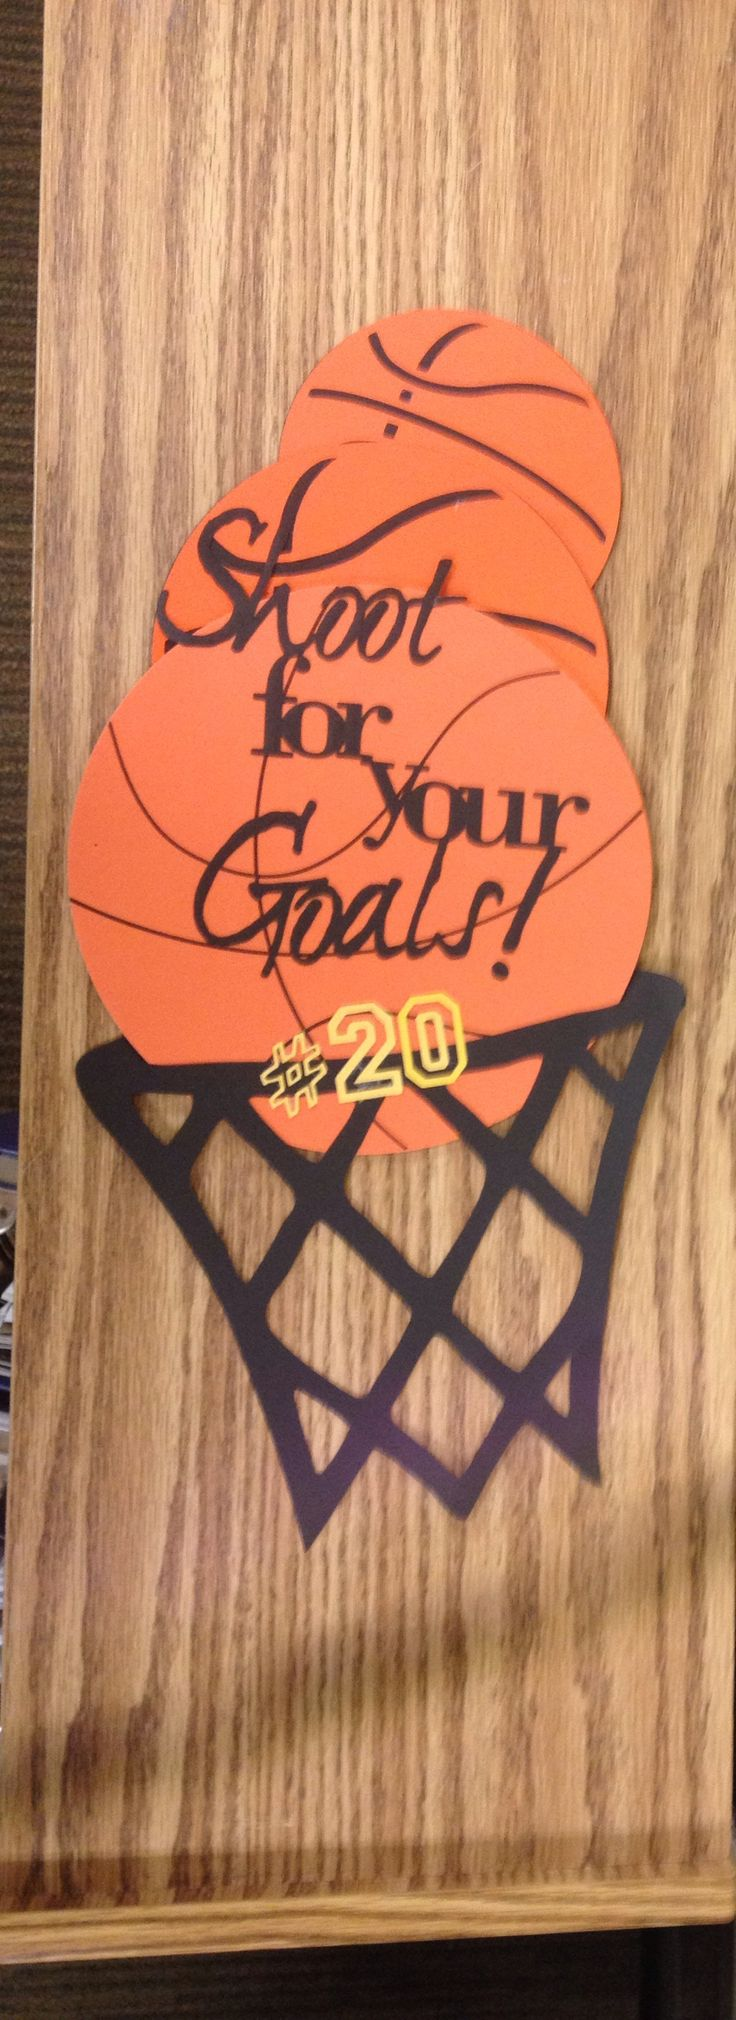 Locker decoration for basketball season for basketball buddies   how     Locker decoration for basketball season for basketball buddies   how cute     Ball   Pinterest   Lockers  Decoration and Cheer